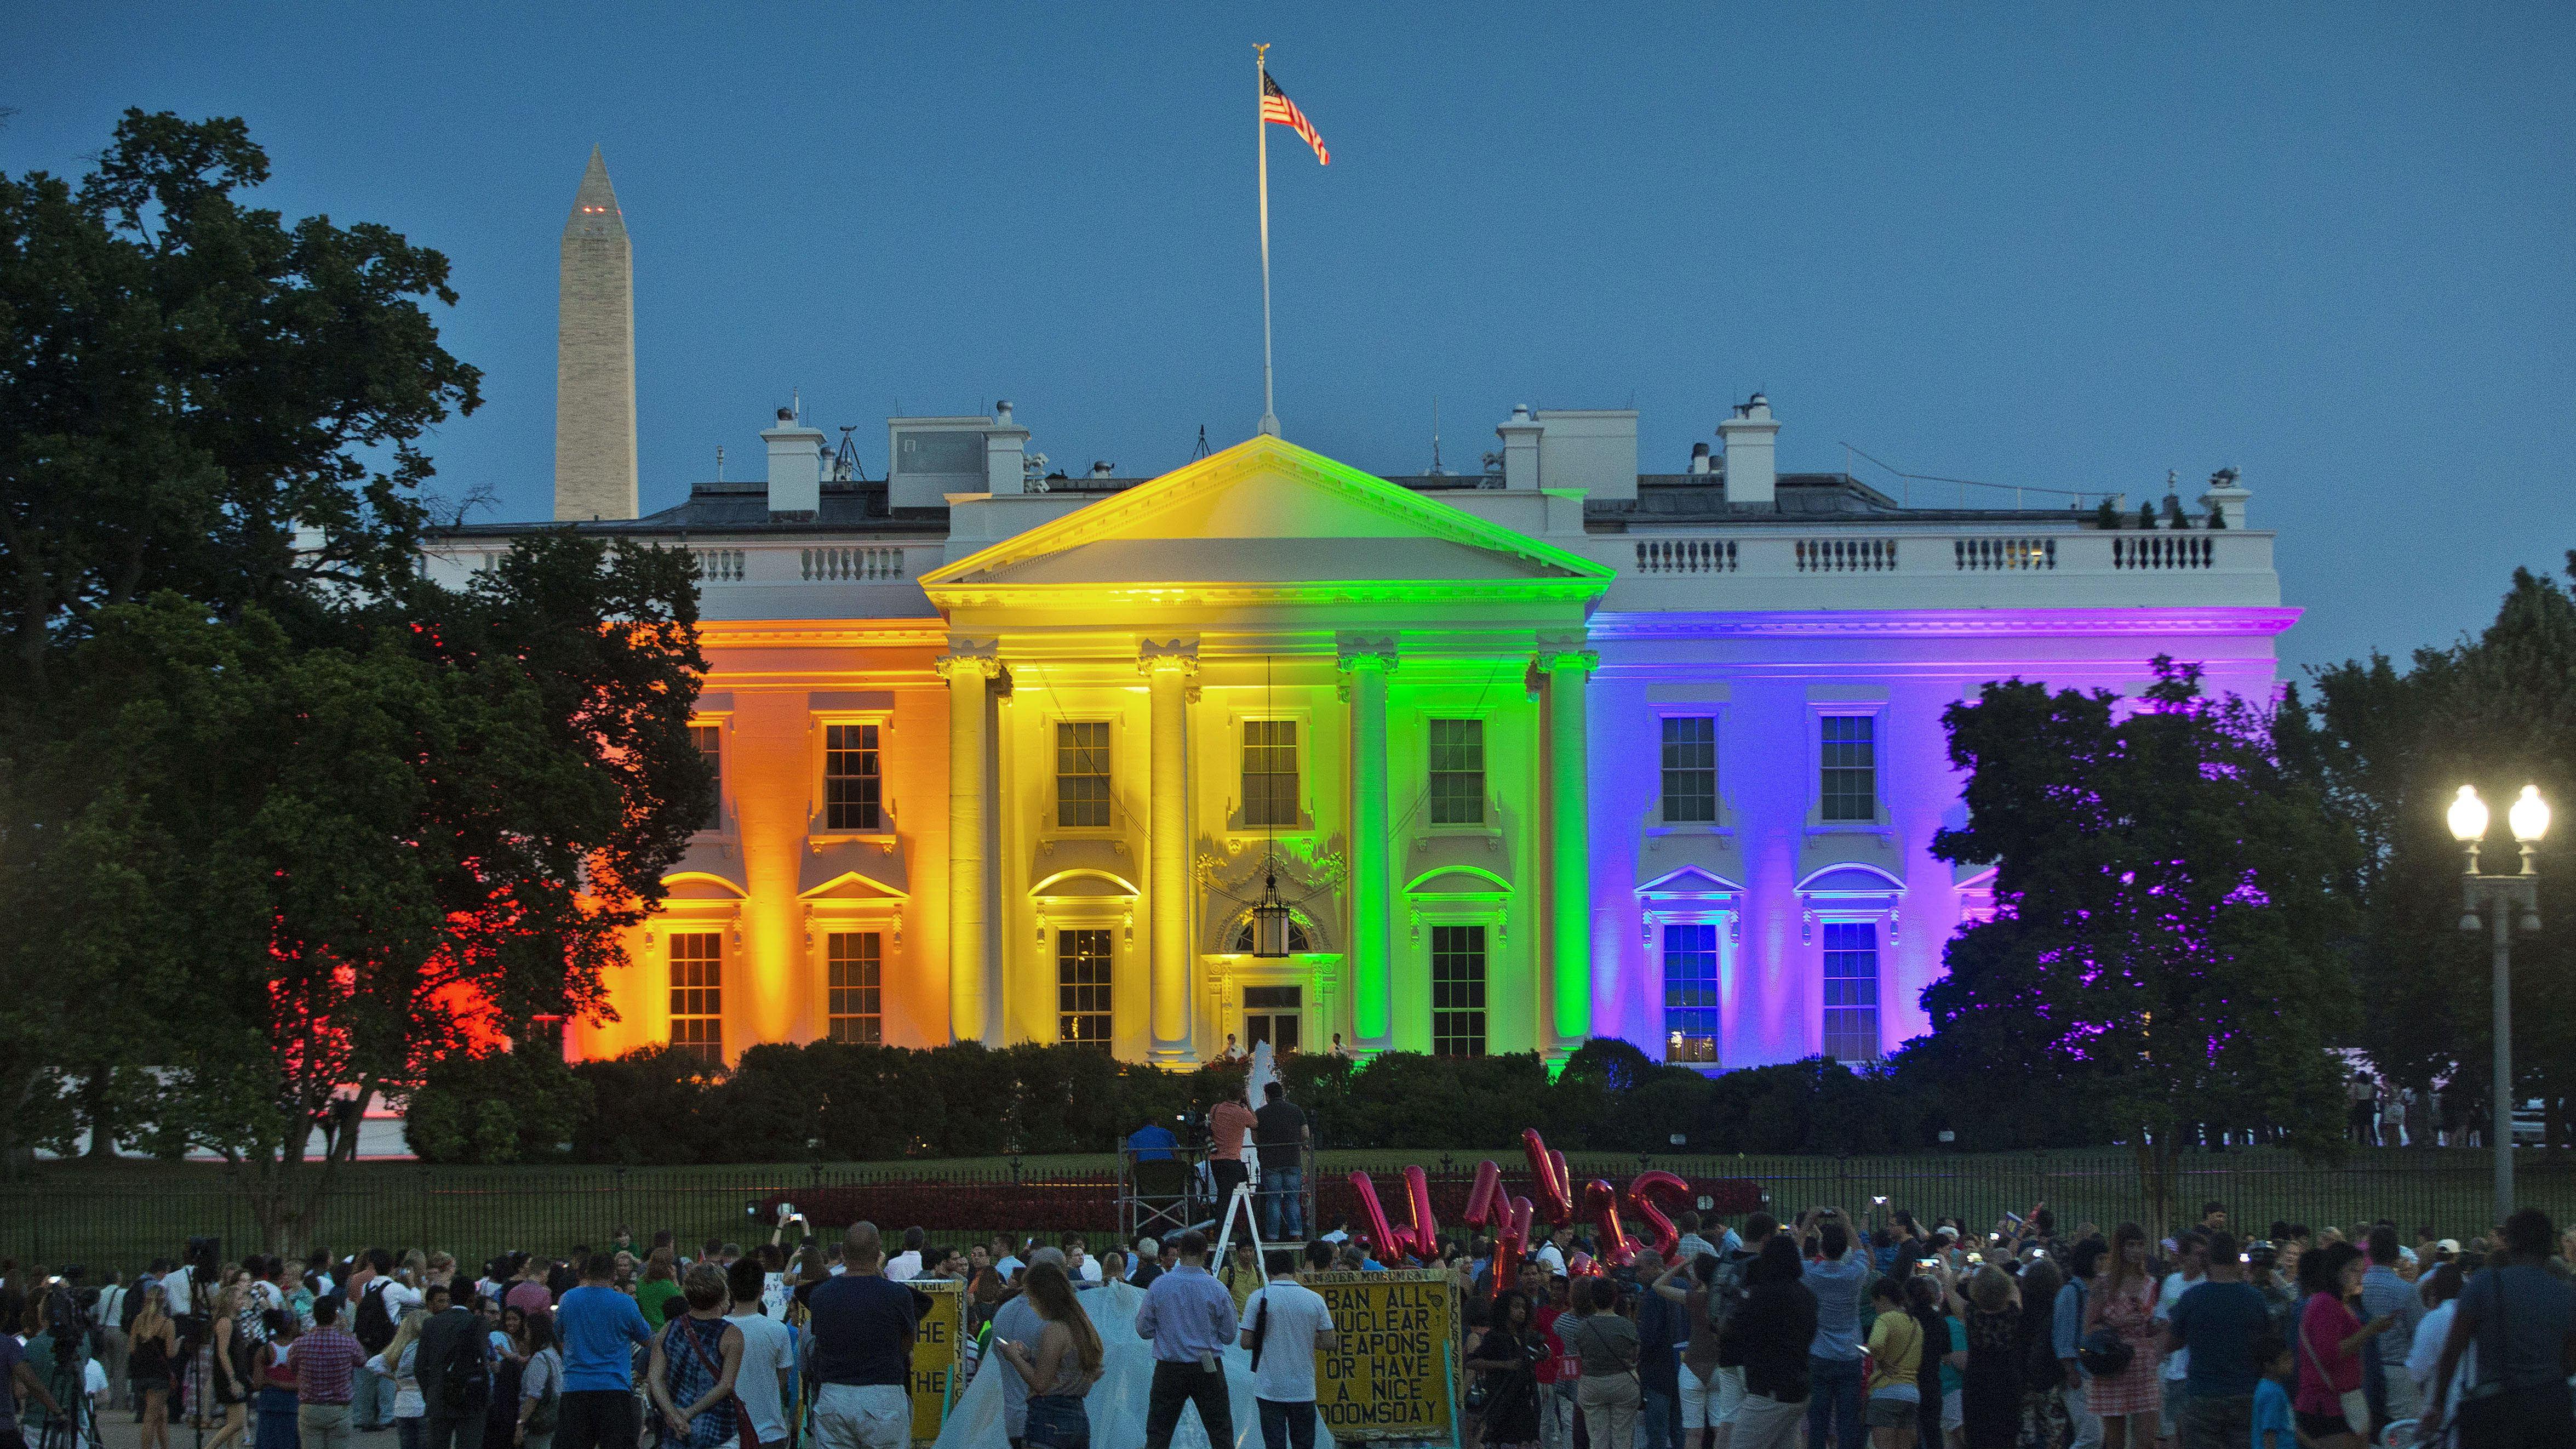 "FILE - In this Friday, June 26, 2015 file photo, people gather in Lafayette Park to see the White House illuminated with rainbow colors in commemoration of the Supreme Court's ruling to legalize same-sex marriage in Washington. It was a new look for the White House: illuminated in rainbow colors to celebrate the Supreme Court decision allowing same-sex marriage nationwide. President Barack Obama, who was inside, felt the glow on that June night in 2015. To see people gathered in the evening outside on a beautiful summer night, and to feel whole and to feel accepted, and to feel that they had a right to love _ that was pretty cool,"" he said a few days later. (AP Photo/Pablo Martinez Monsivais, File)"